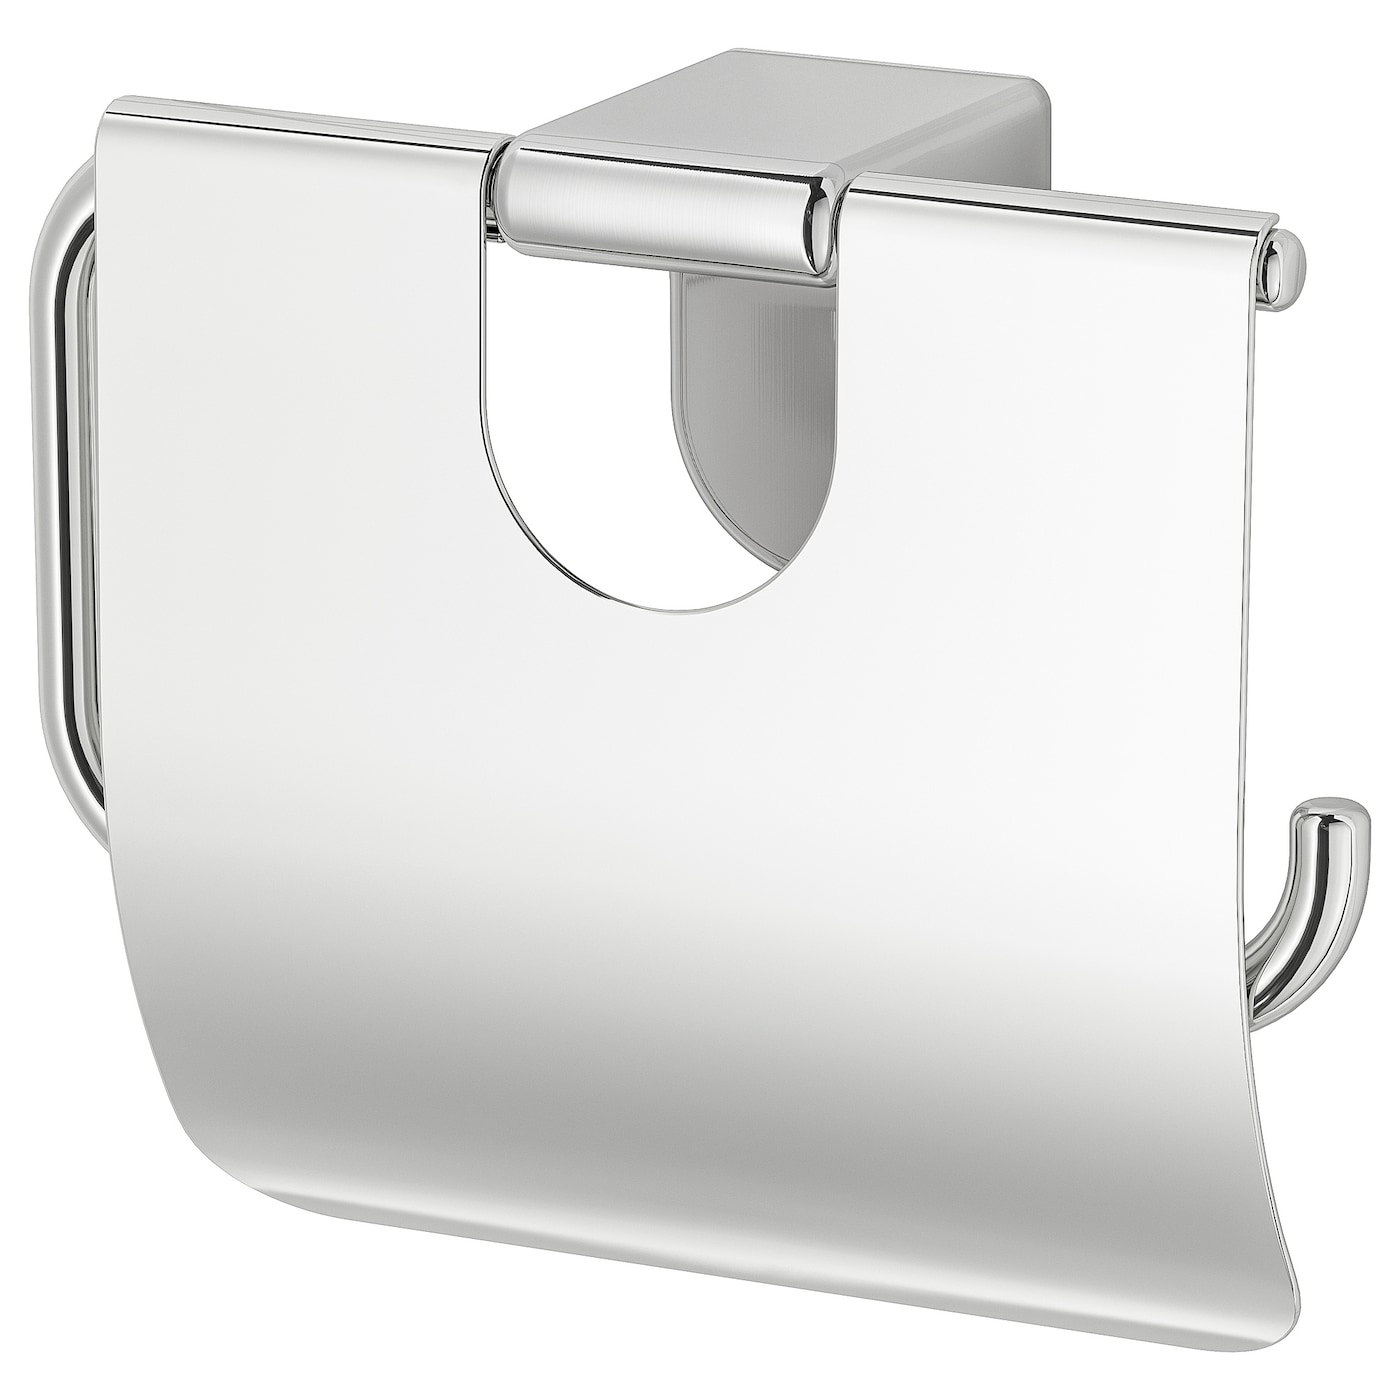 KALKGRUND   Toilet Roll Holder, Chrome Plated